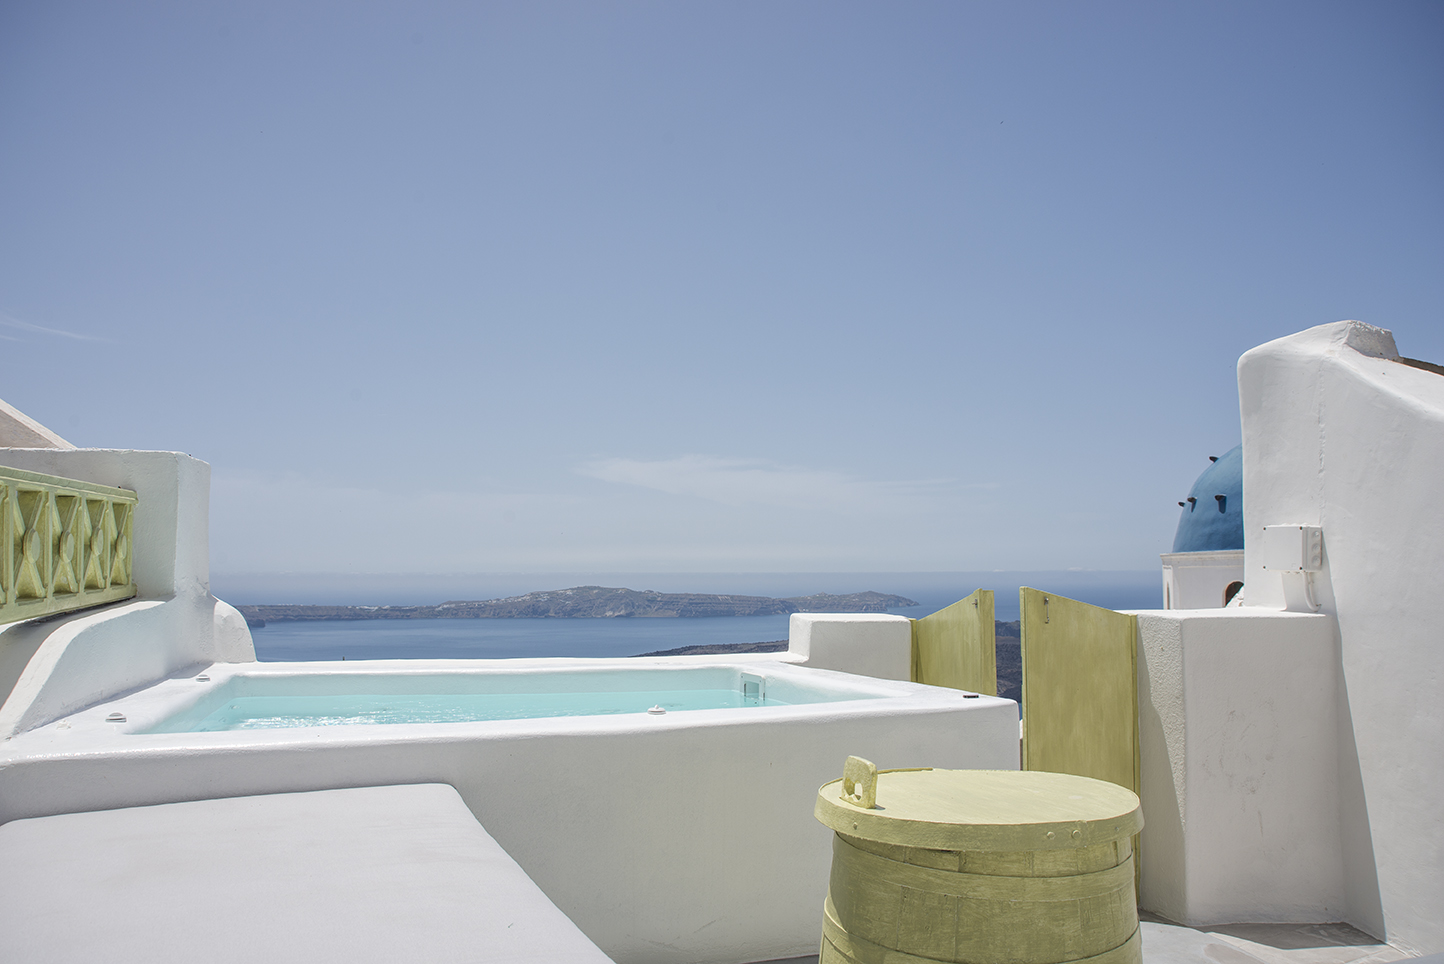 Santorini Cave House with jacuzzi and view to caldera